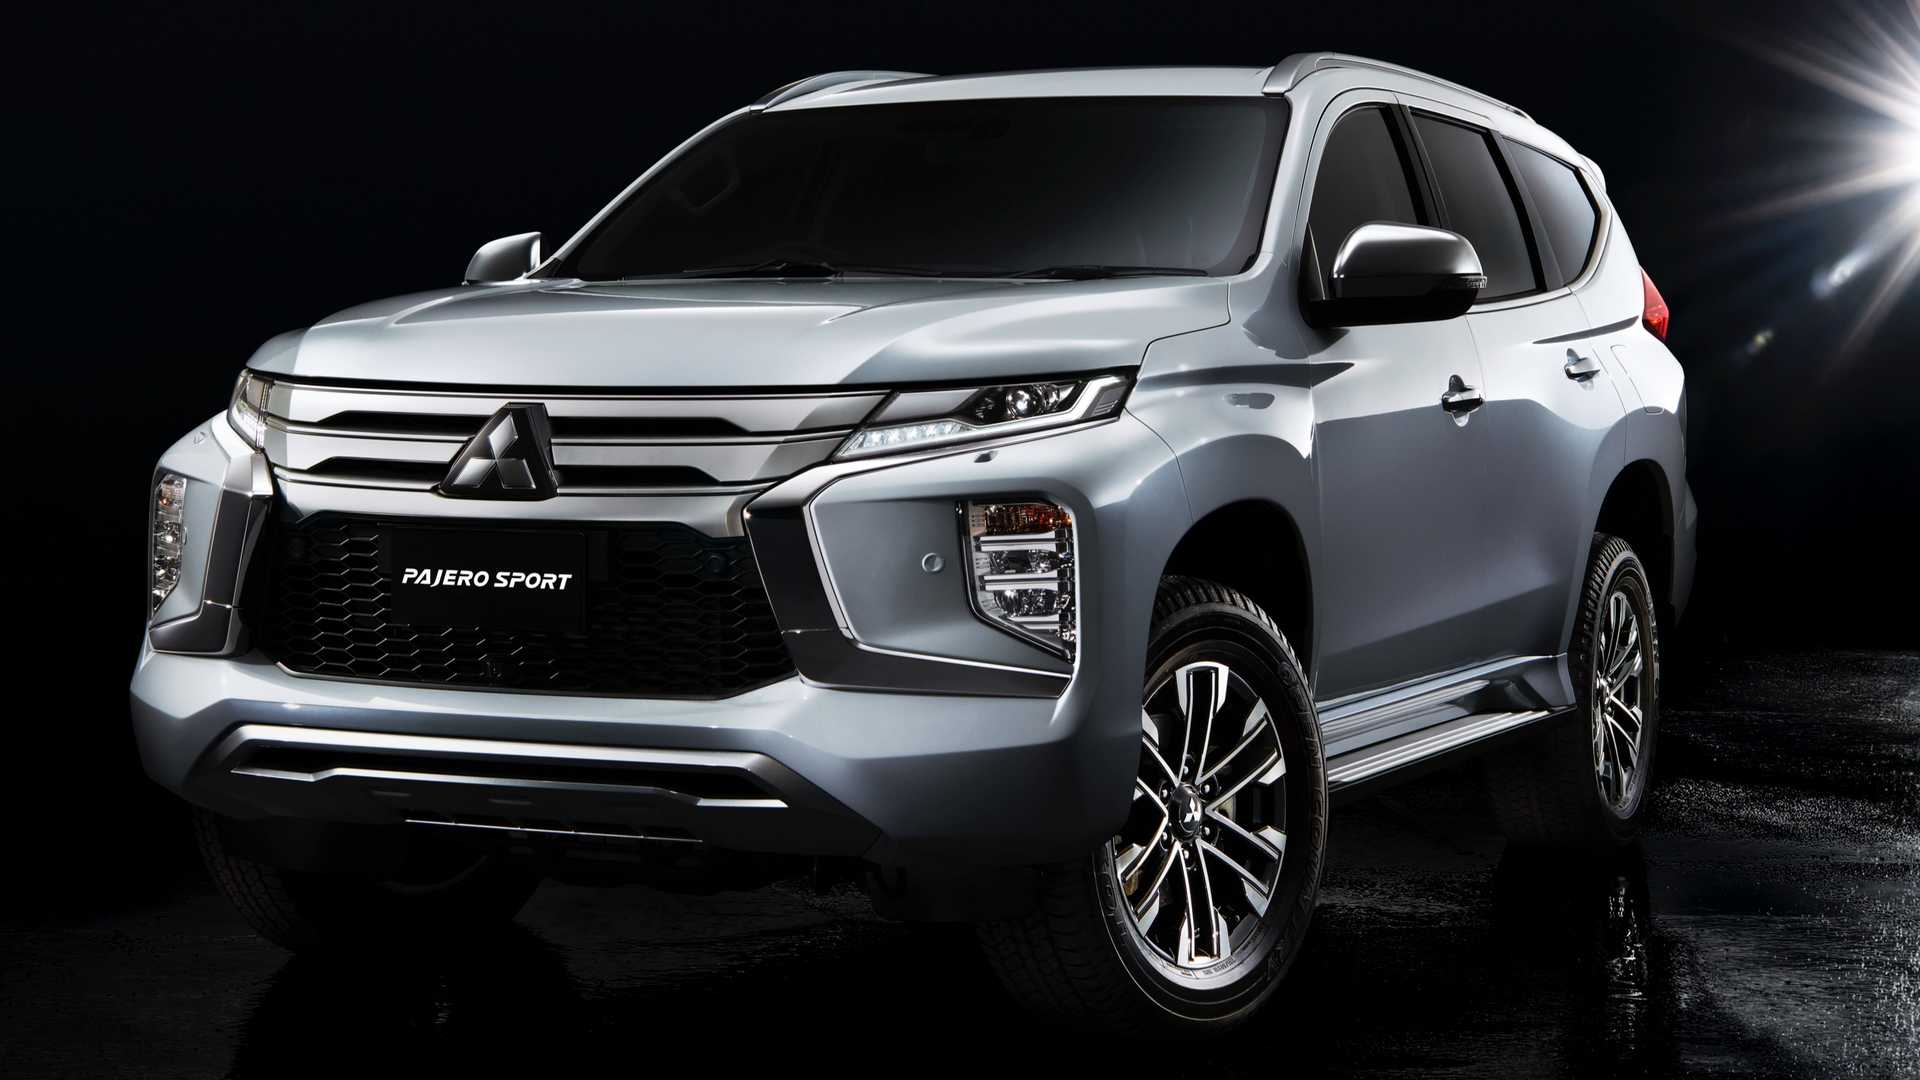 2020 Mitsubishi Pajero Sport Gets Fresh Face Updated Interior